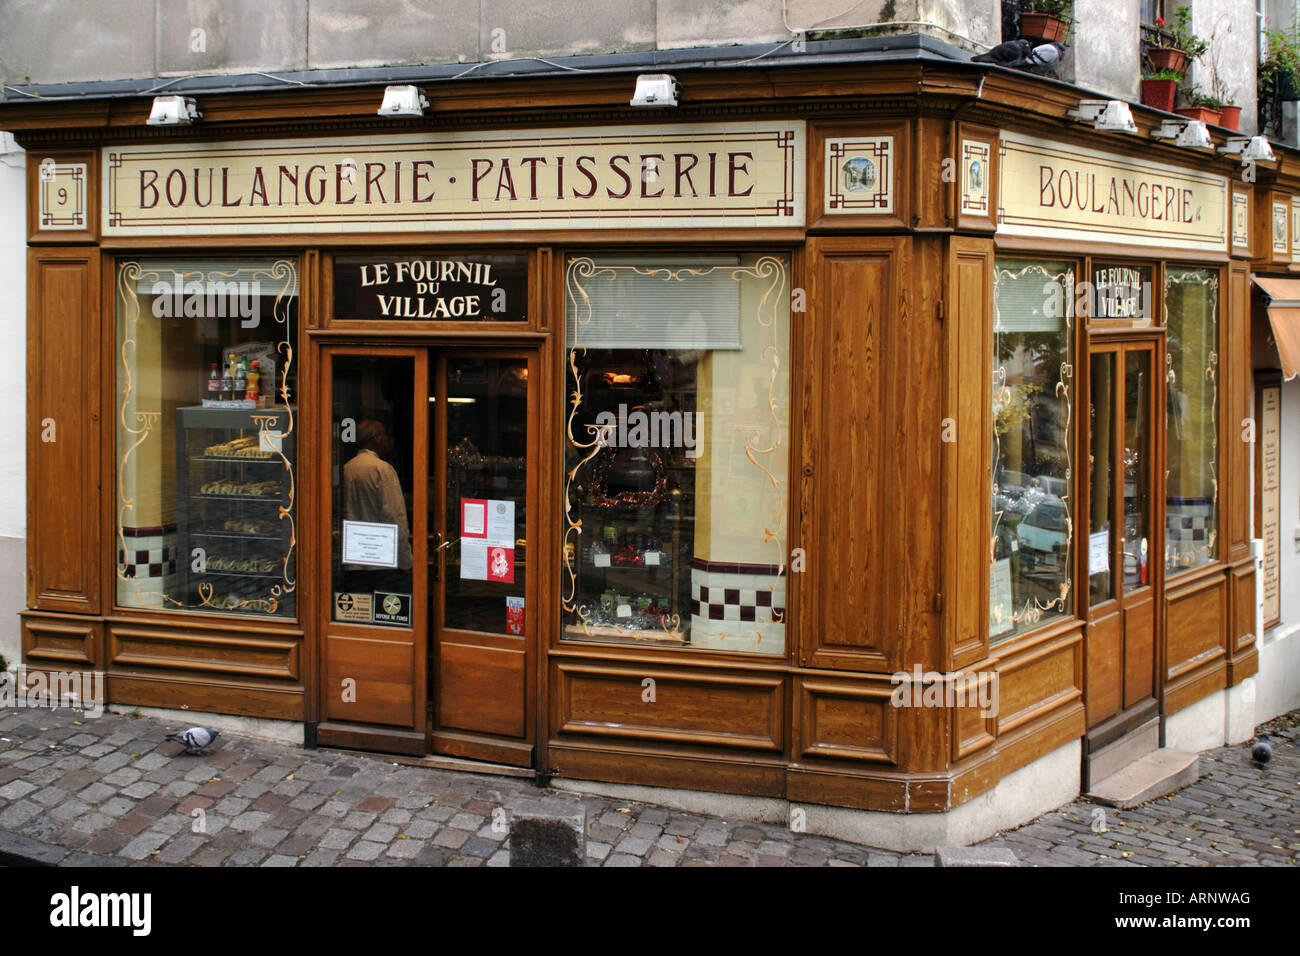 a-traditional-french-boulangerie-patisserie-in-montmartre-paris-france-ARNWAG.jpg